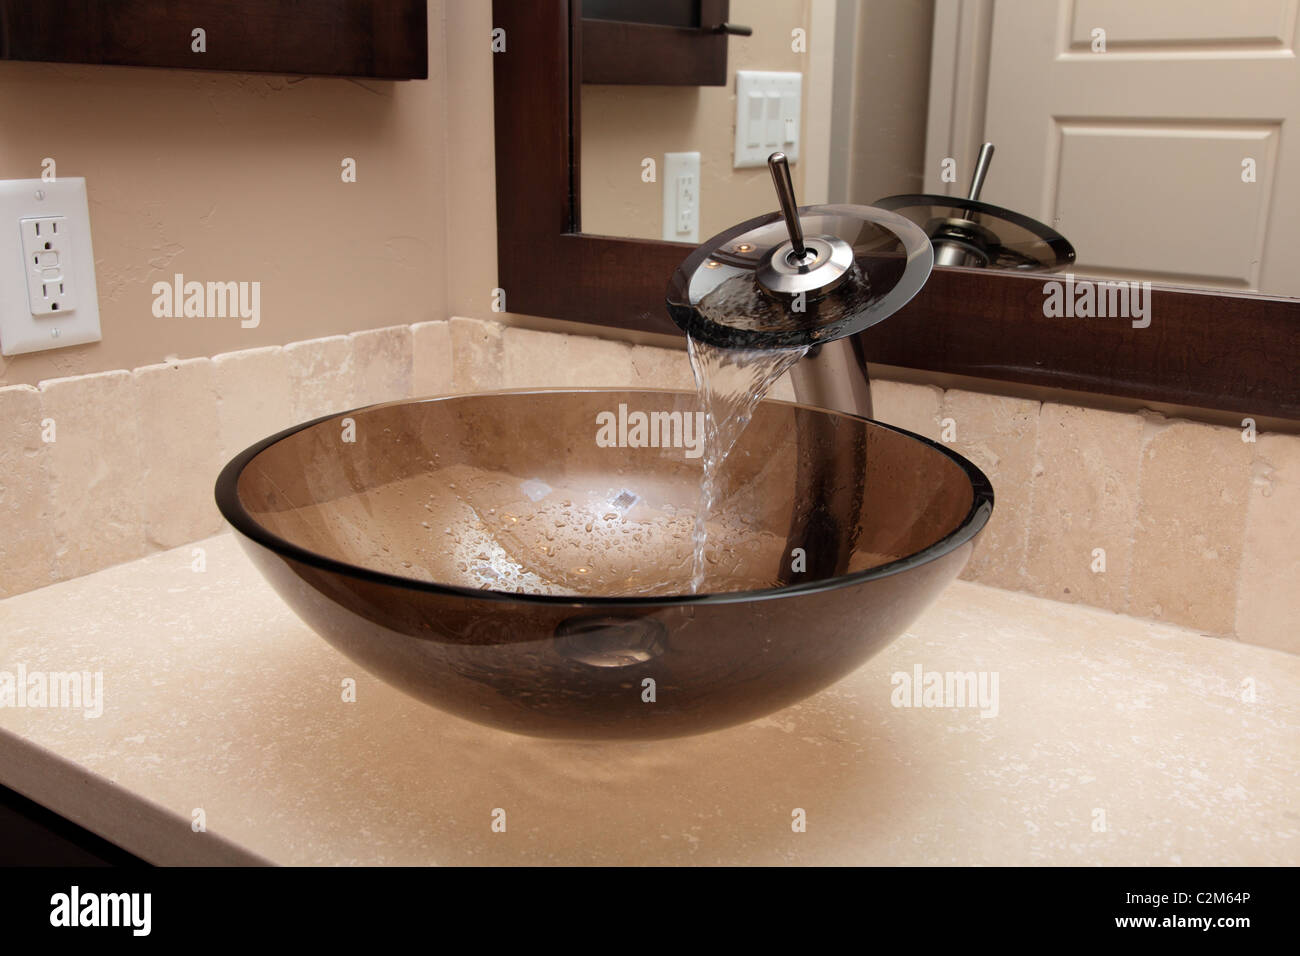 Brown Glass Bowl Sink With Water Falling From The Faucet